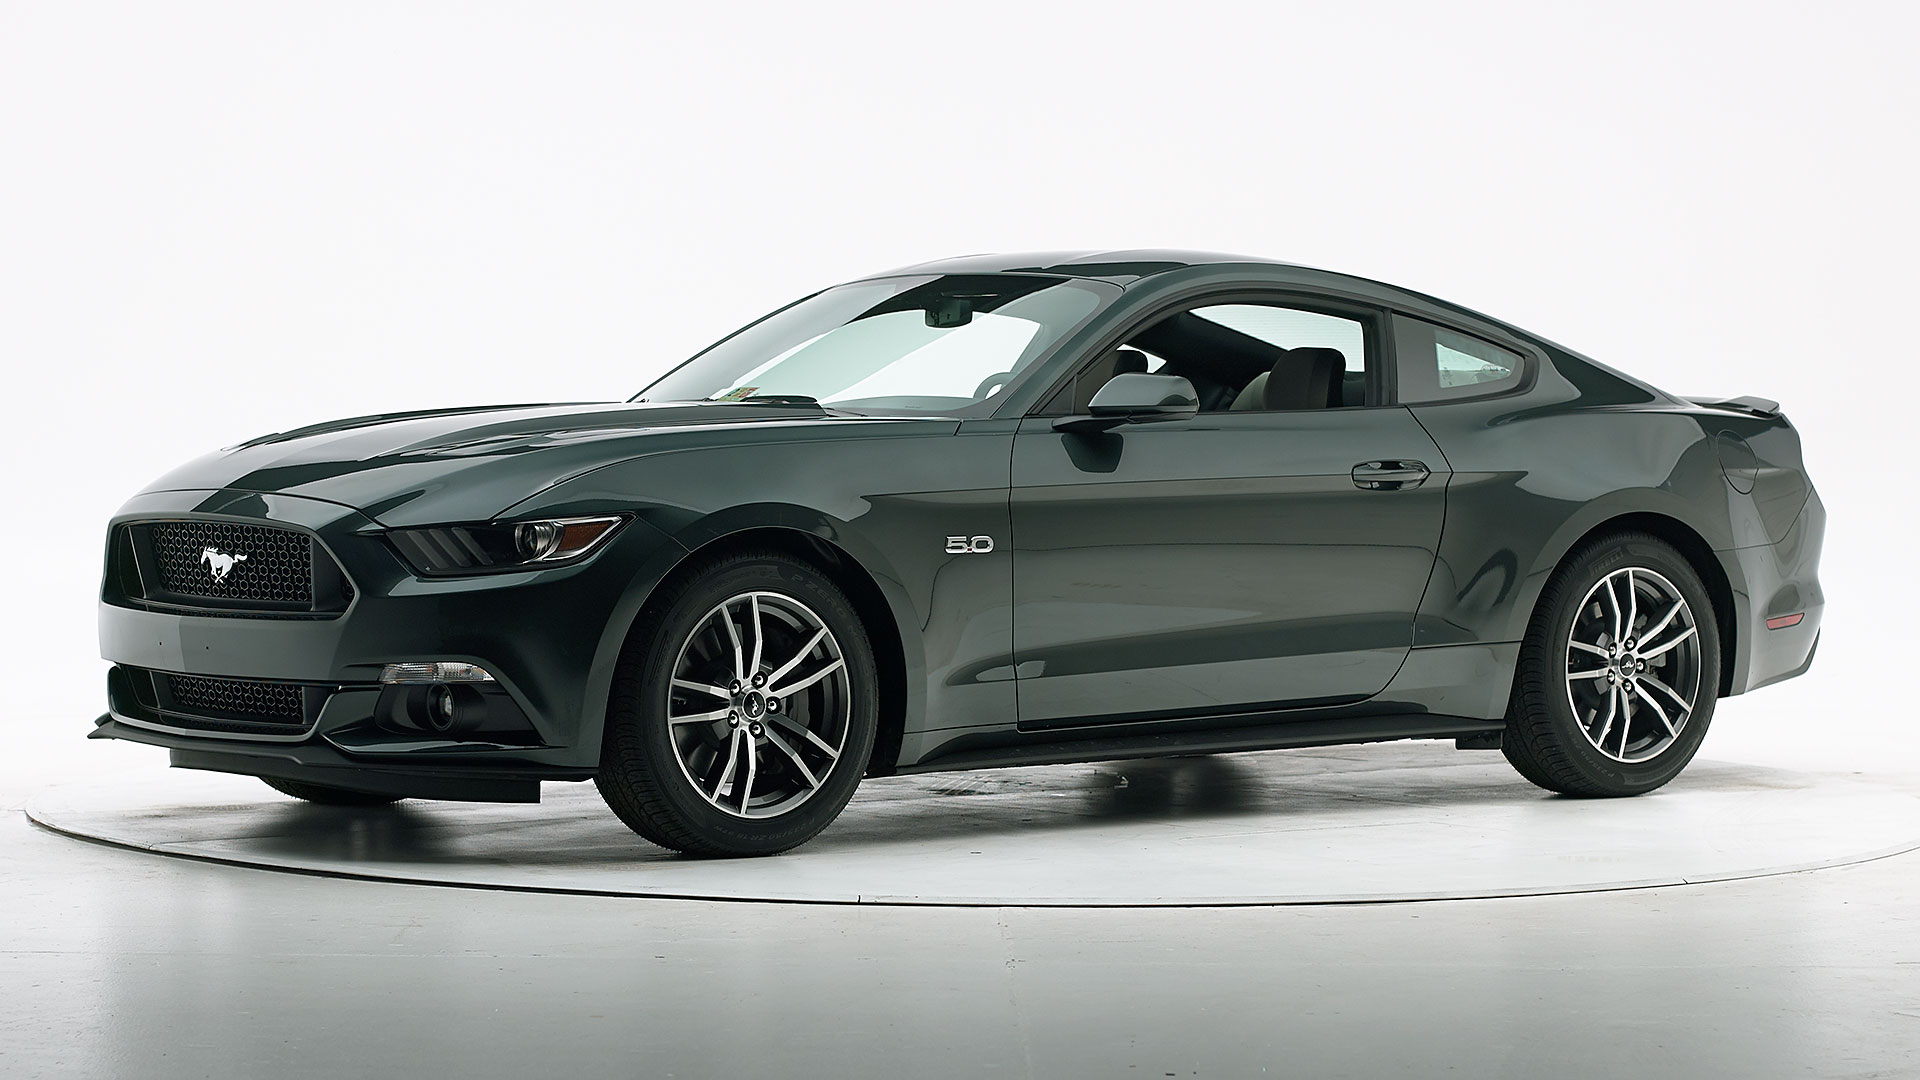 2016 Ford Mustang 2-door coupe